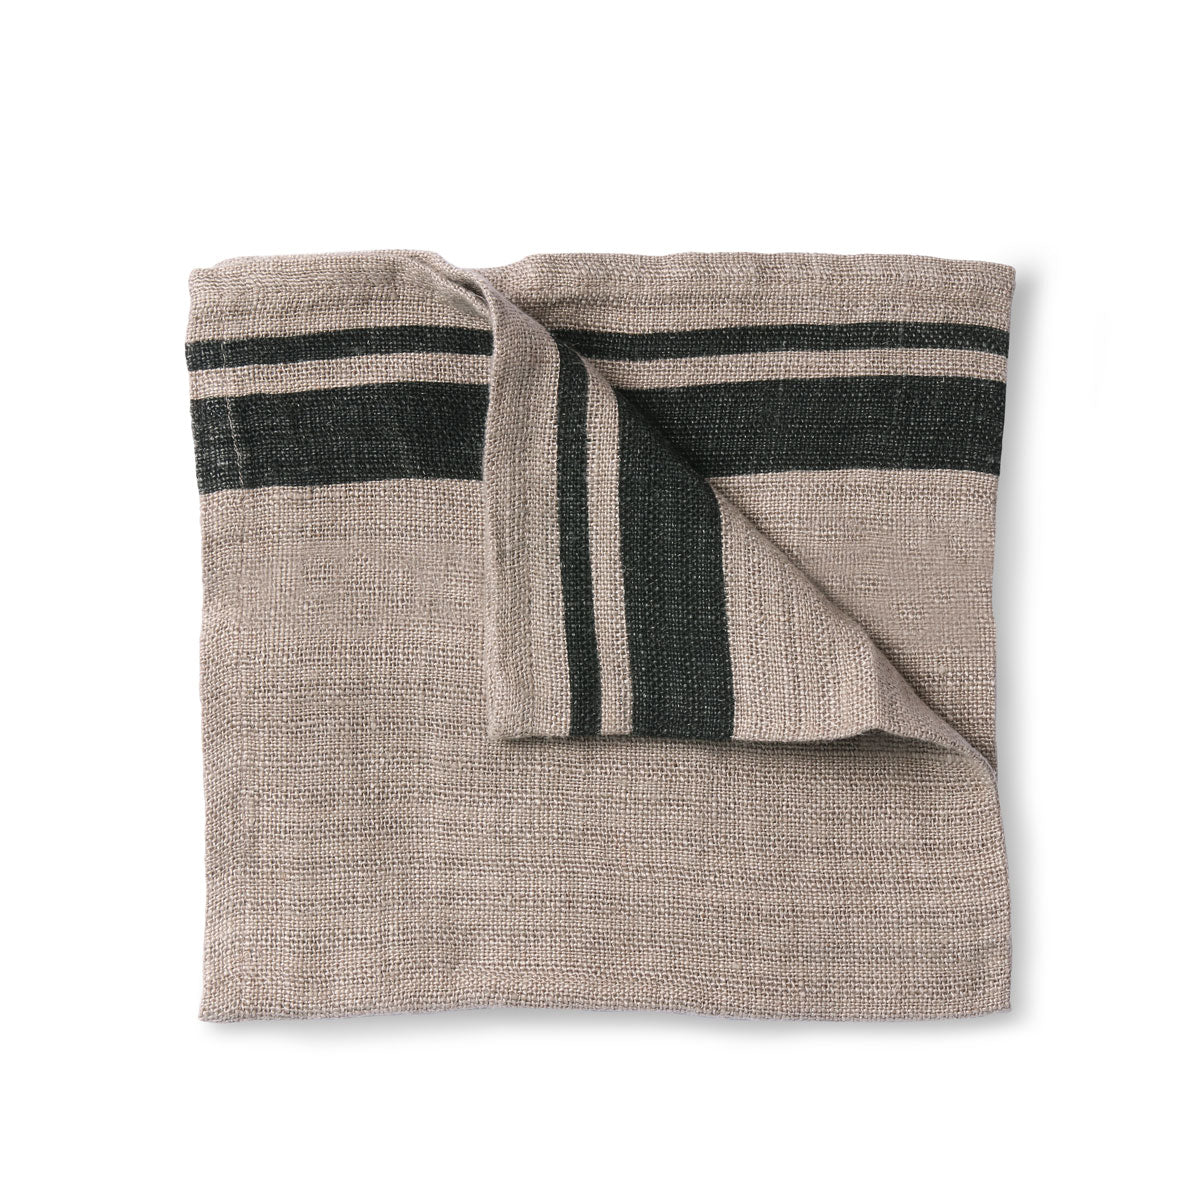 HK Living natural/striped linen napkin set of 2 (45x45)